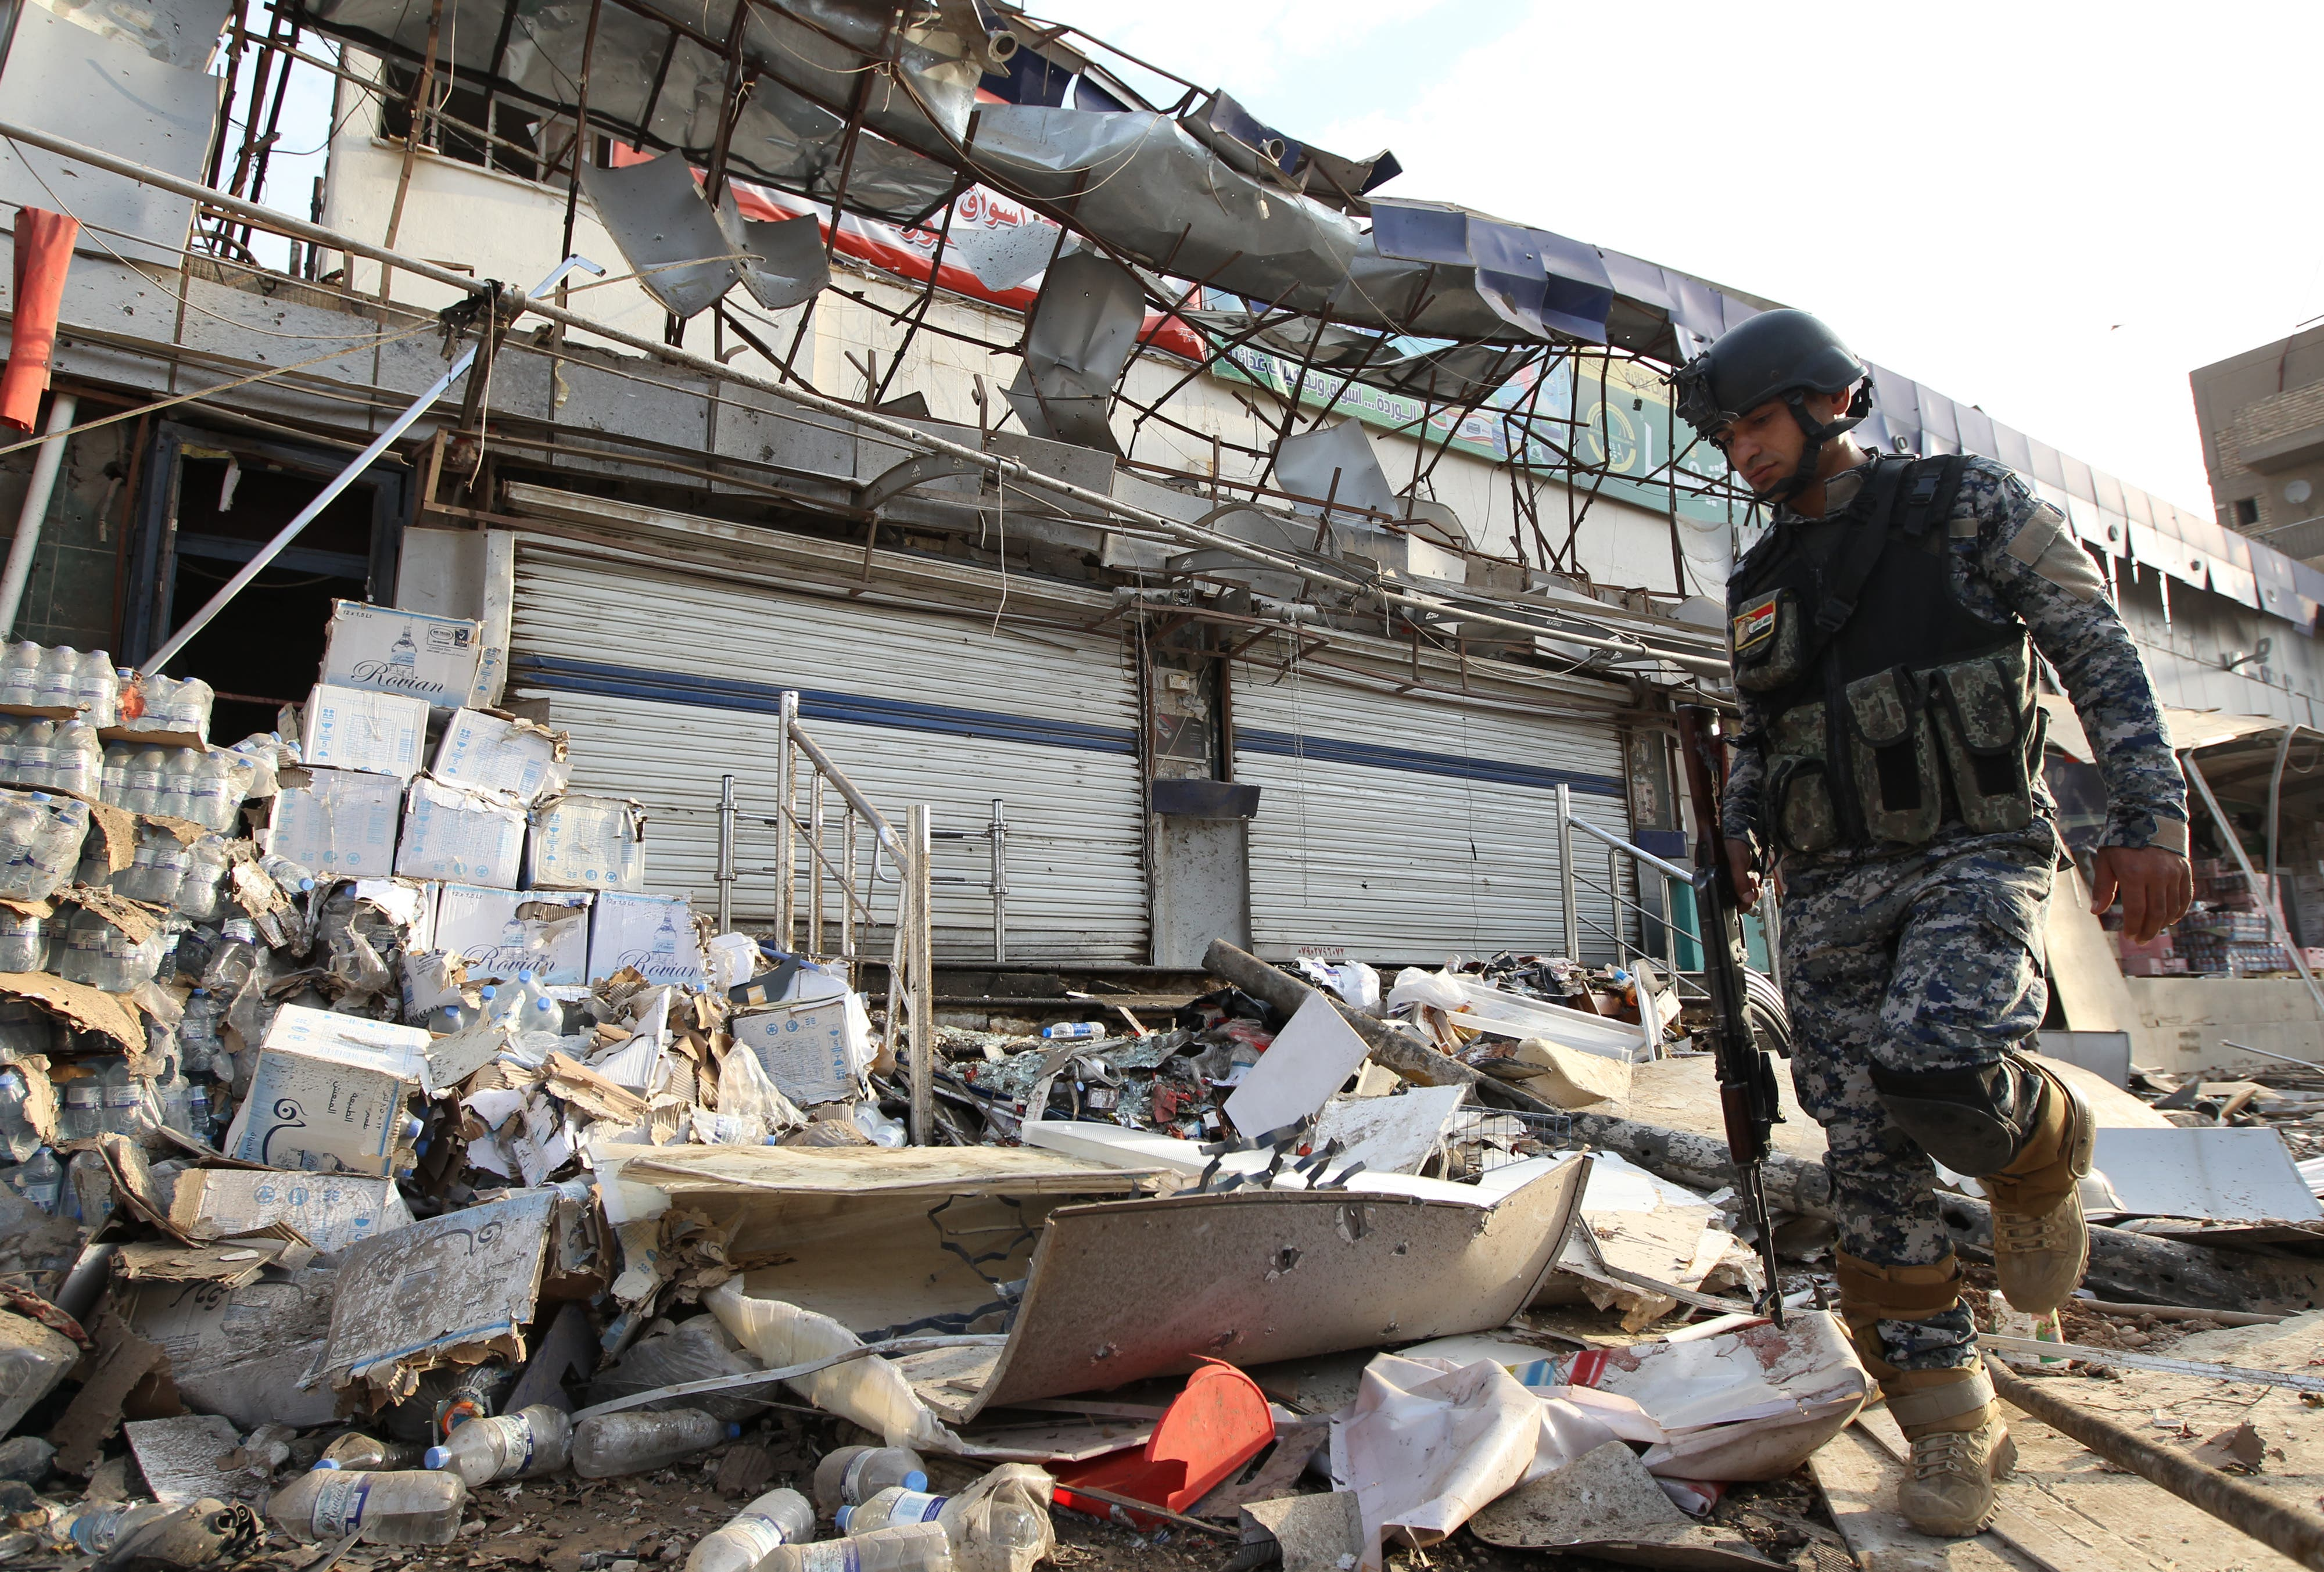 An Iraqi policeman inspects the damage outside a supermarket in central Baghdad's commercial Karrada neighbourhood on June 25, 2013 after a car bomb exploded in the parking area the night before. (Source: AFP/ALI AL-SAADI)